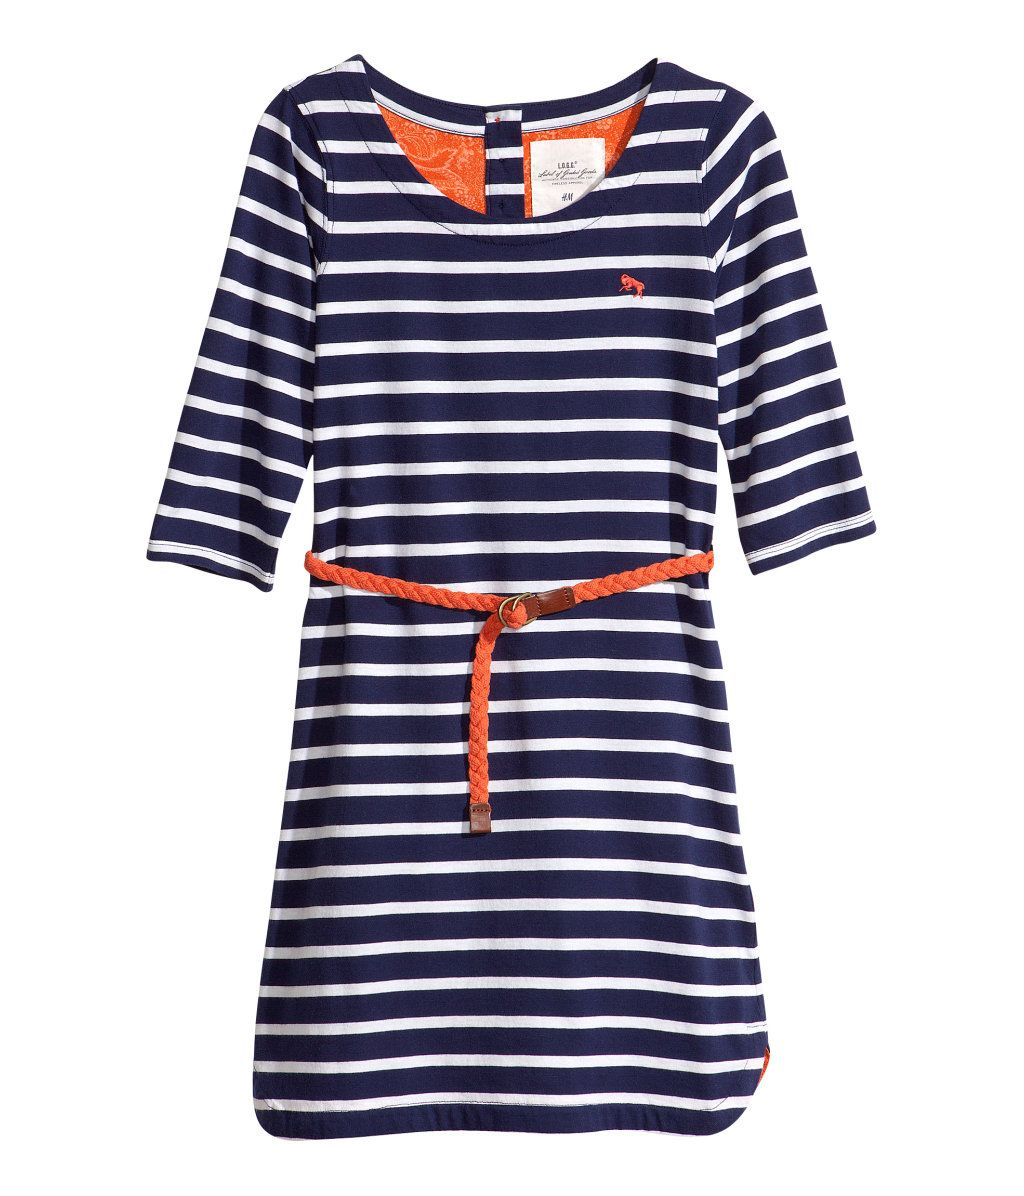 H M Jersey Dress 14 95 Tween Outfits School Dresses Back To School Fashion